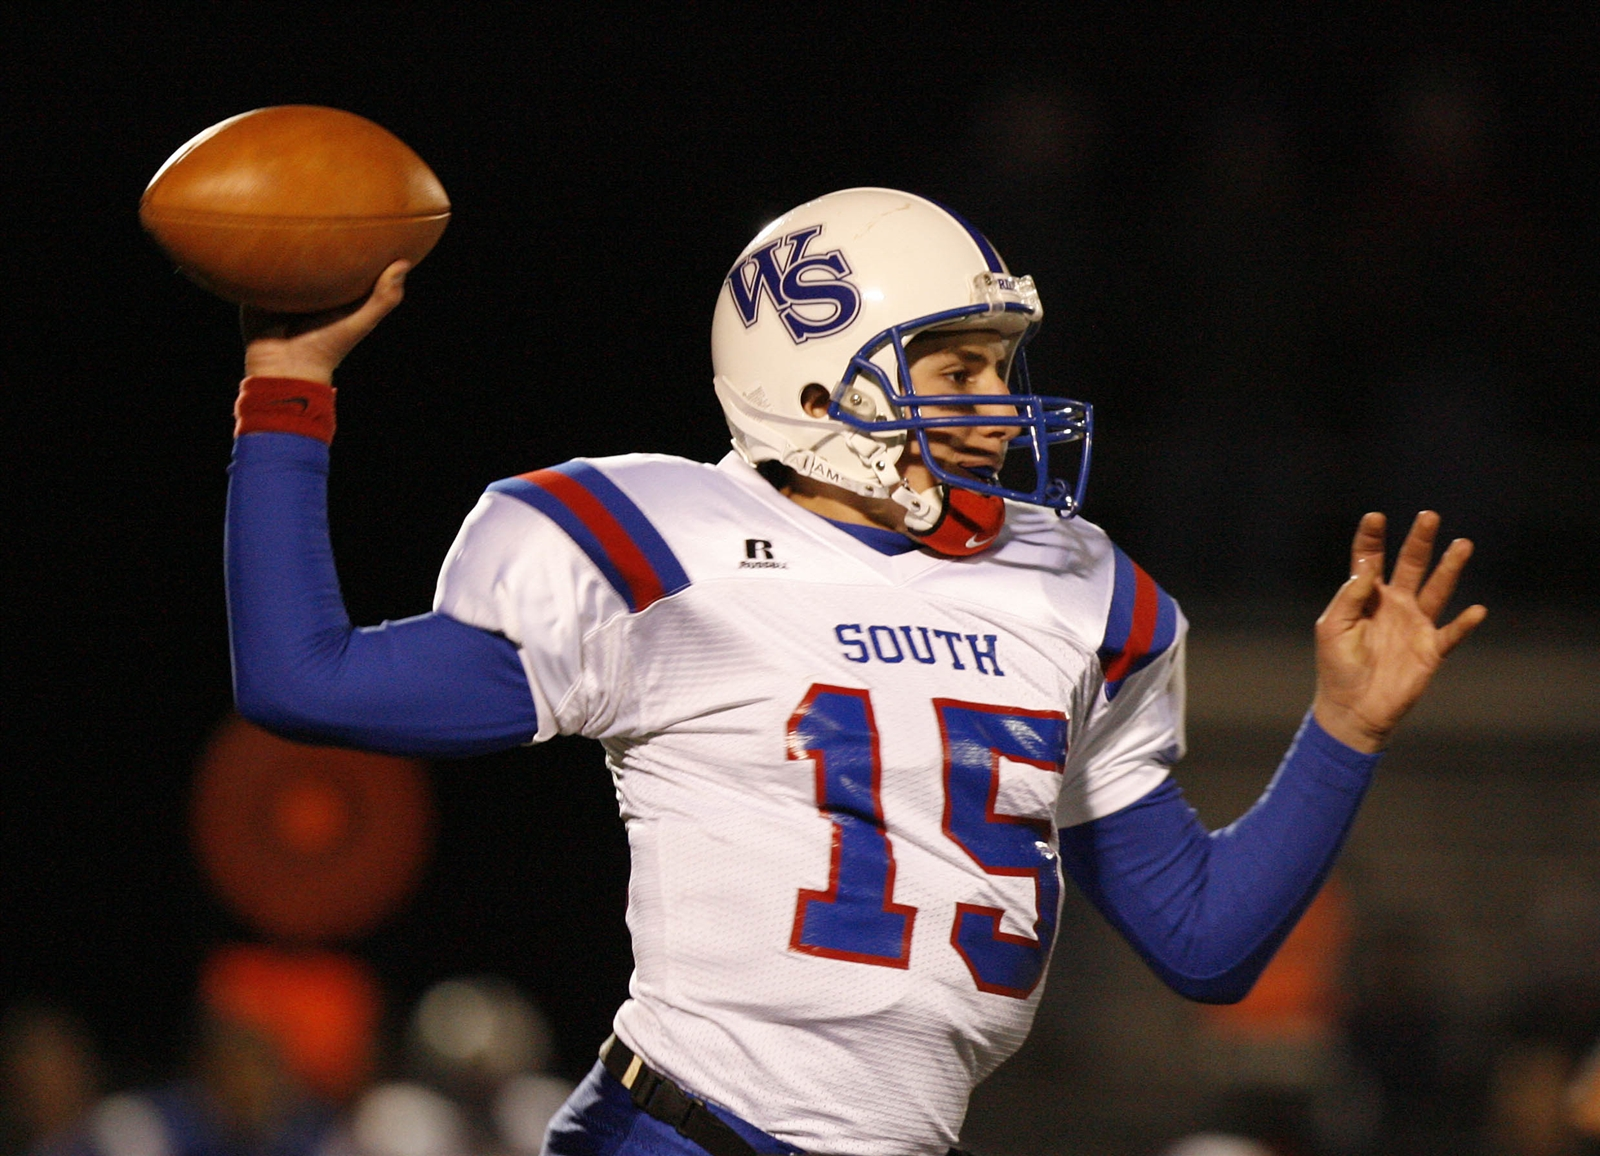 Williamsville South's Joe Licata makes a throw during a game against West Seneca East on Oct. 24, 2008.